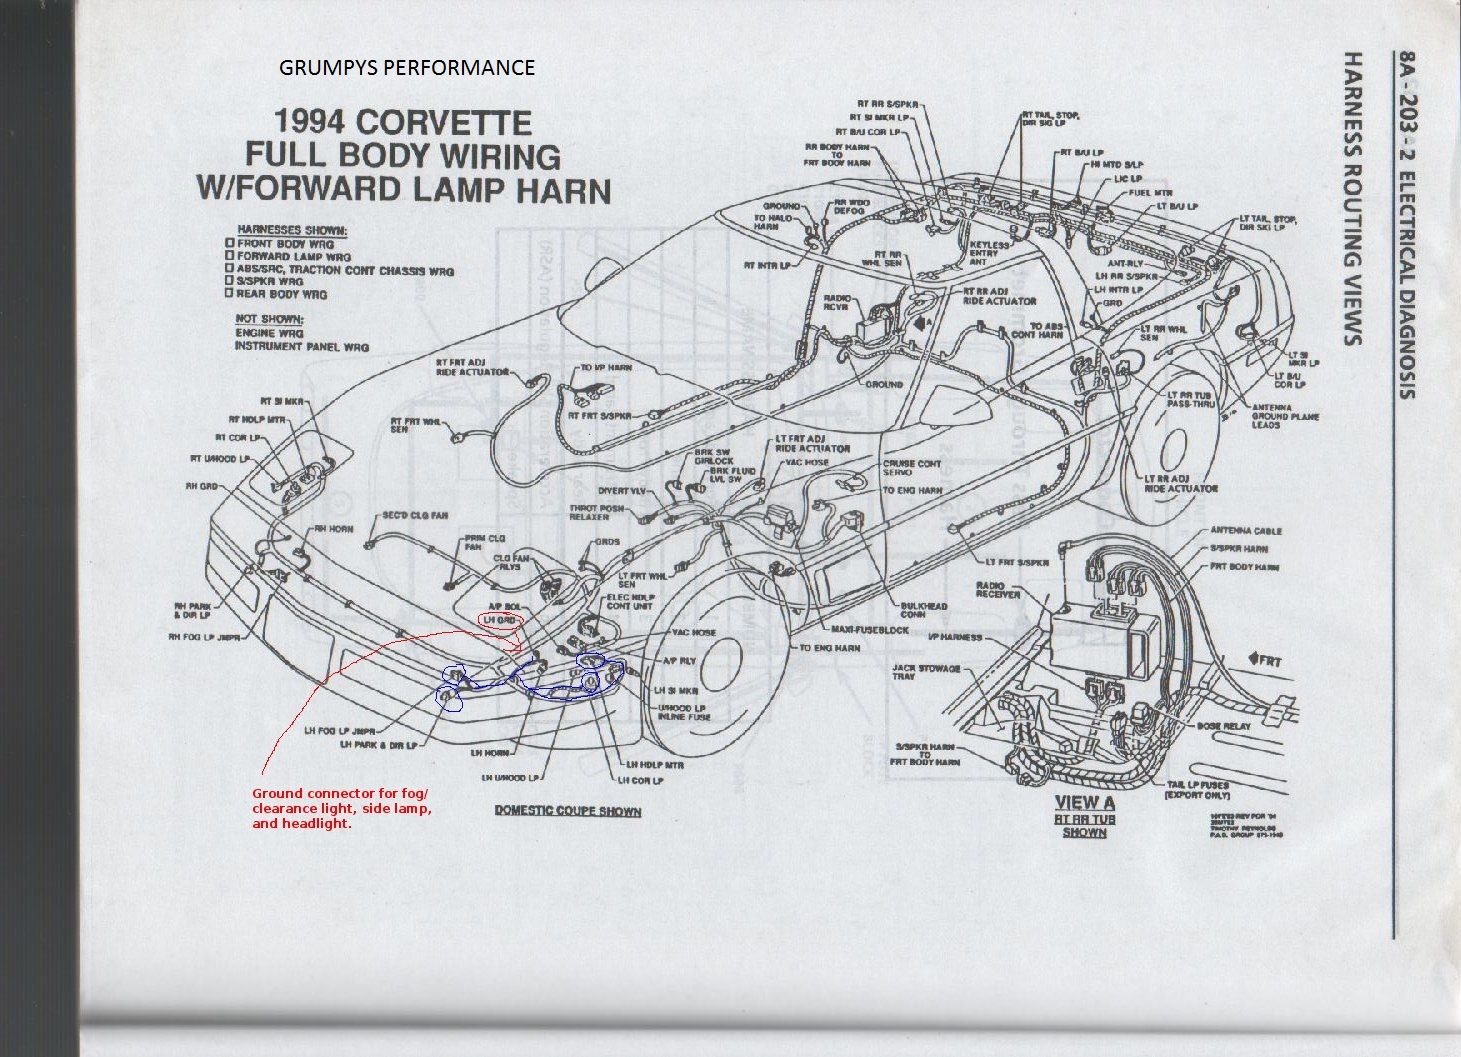 1984 Corvette Fuel Pump Wire Harness Reveolution Of Wiring Diagram 1996 Fuse Box Mounting An Effective Trans Cooler On A C4 1985 Overdrive Relay